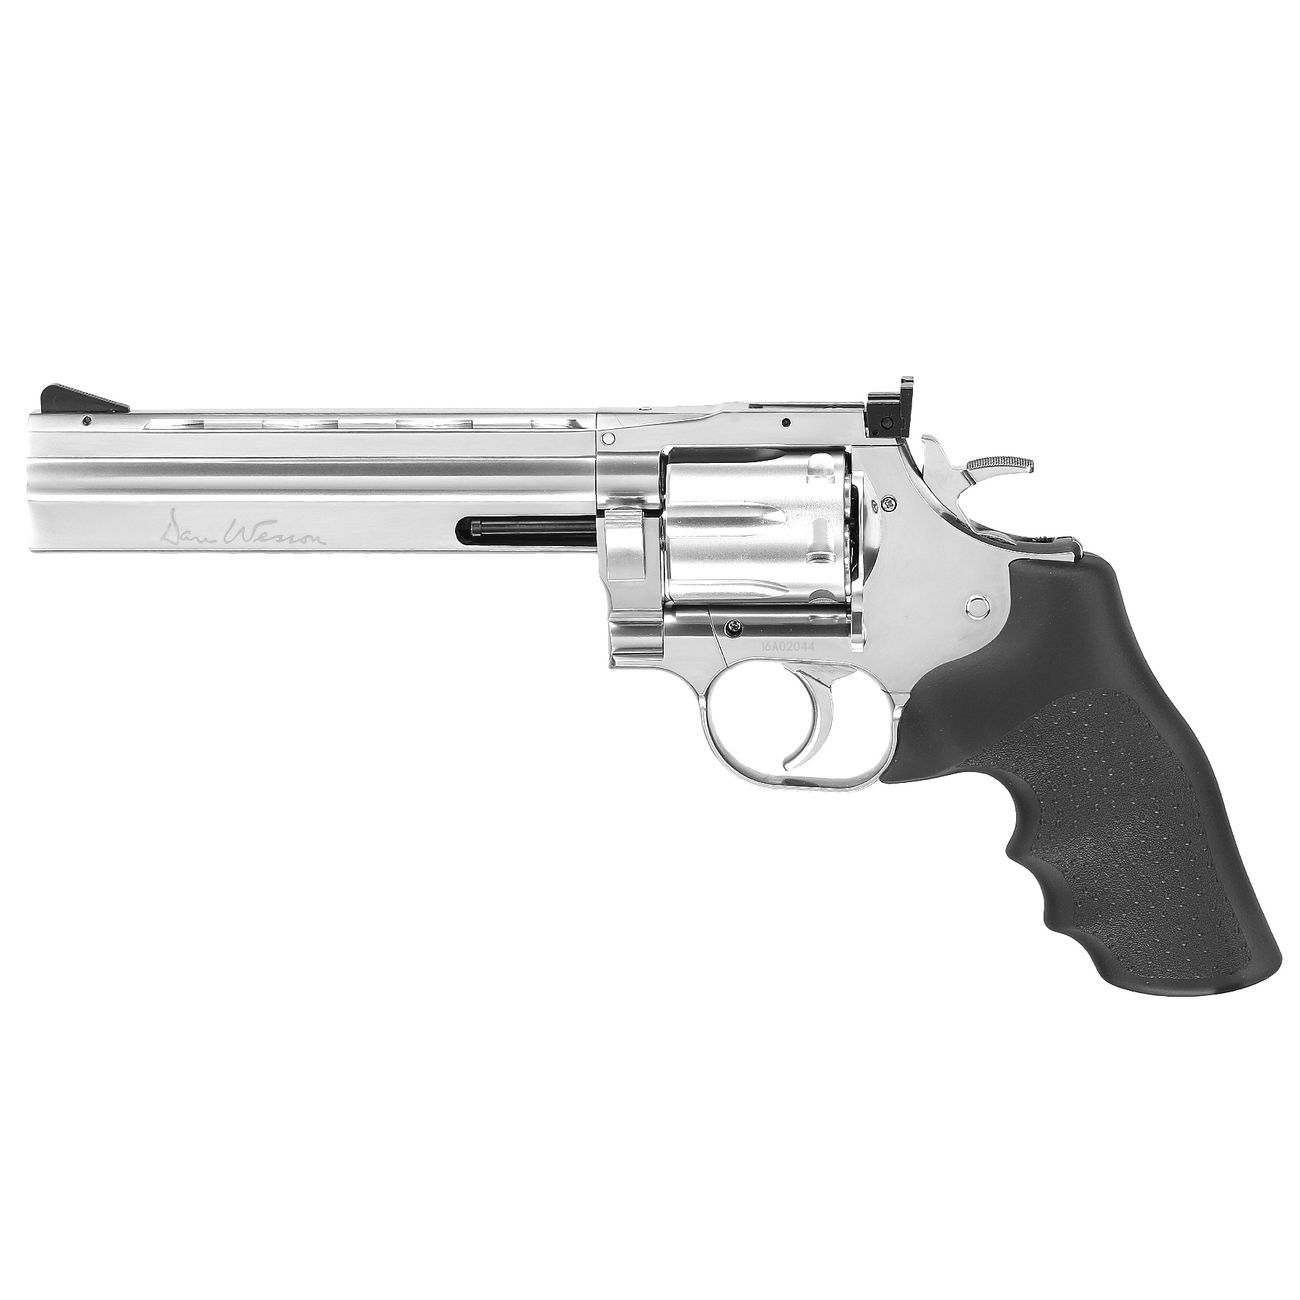 ASG Dan Wesson 715 6 Zoll Revolver Vollmetall CO2 6mm BB chrom Low Power Version 1